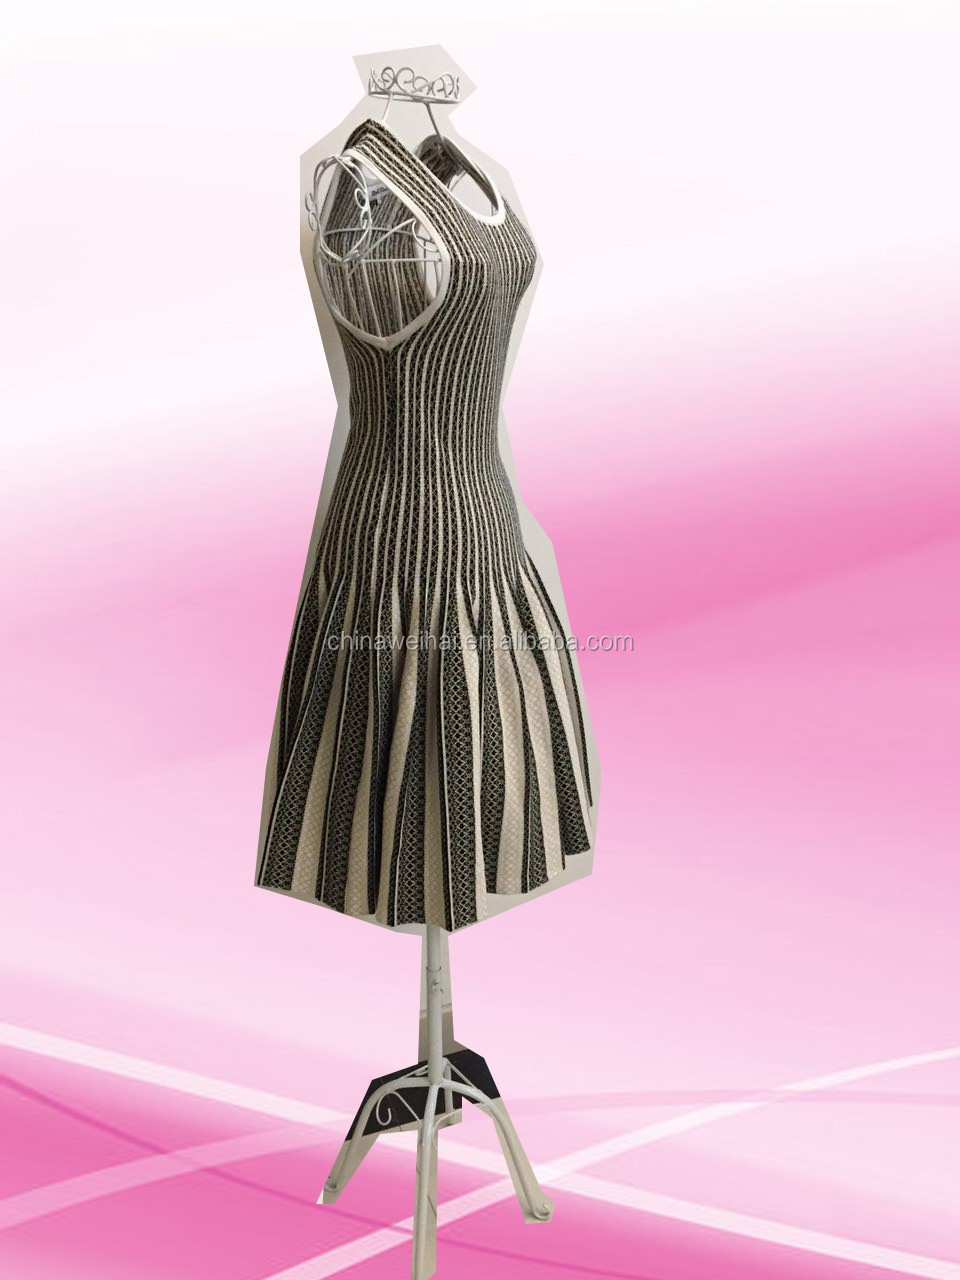 Fashion Wire Mannequin The Image Kid